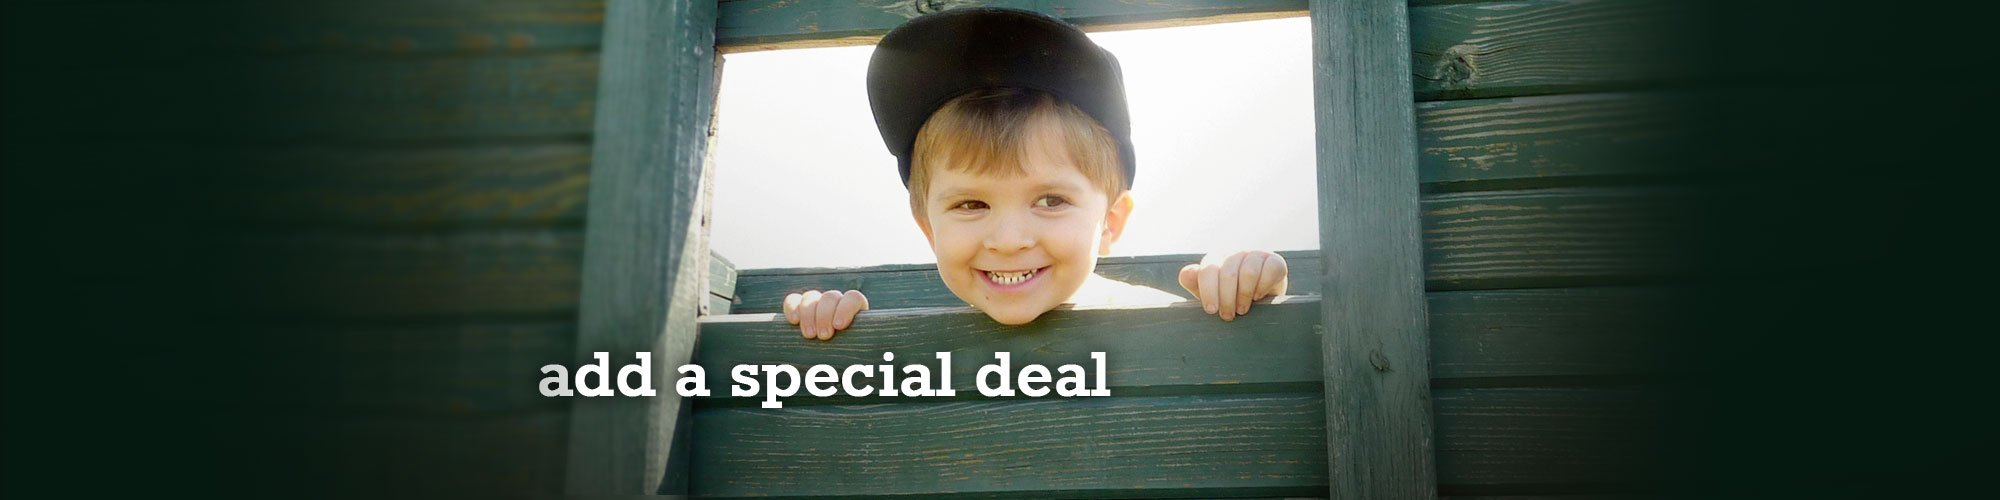 Add a Special Deal